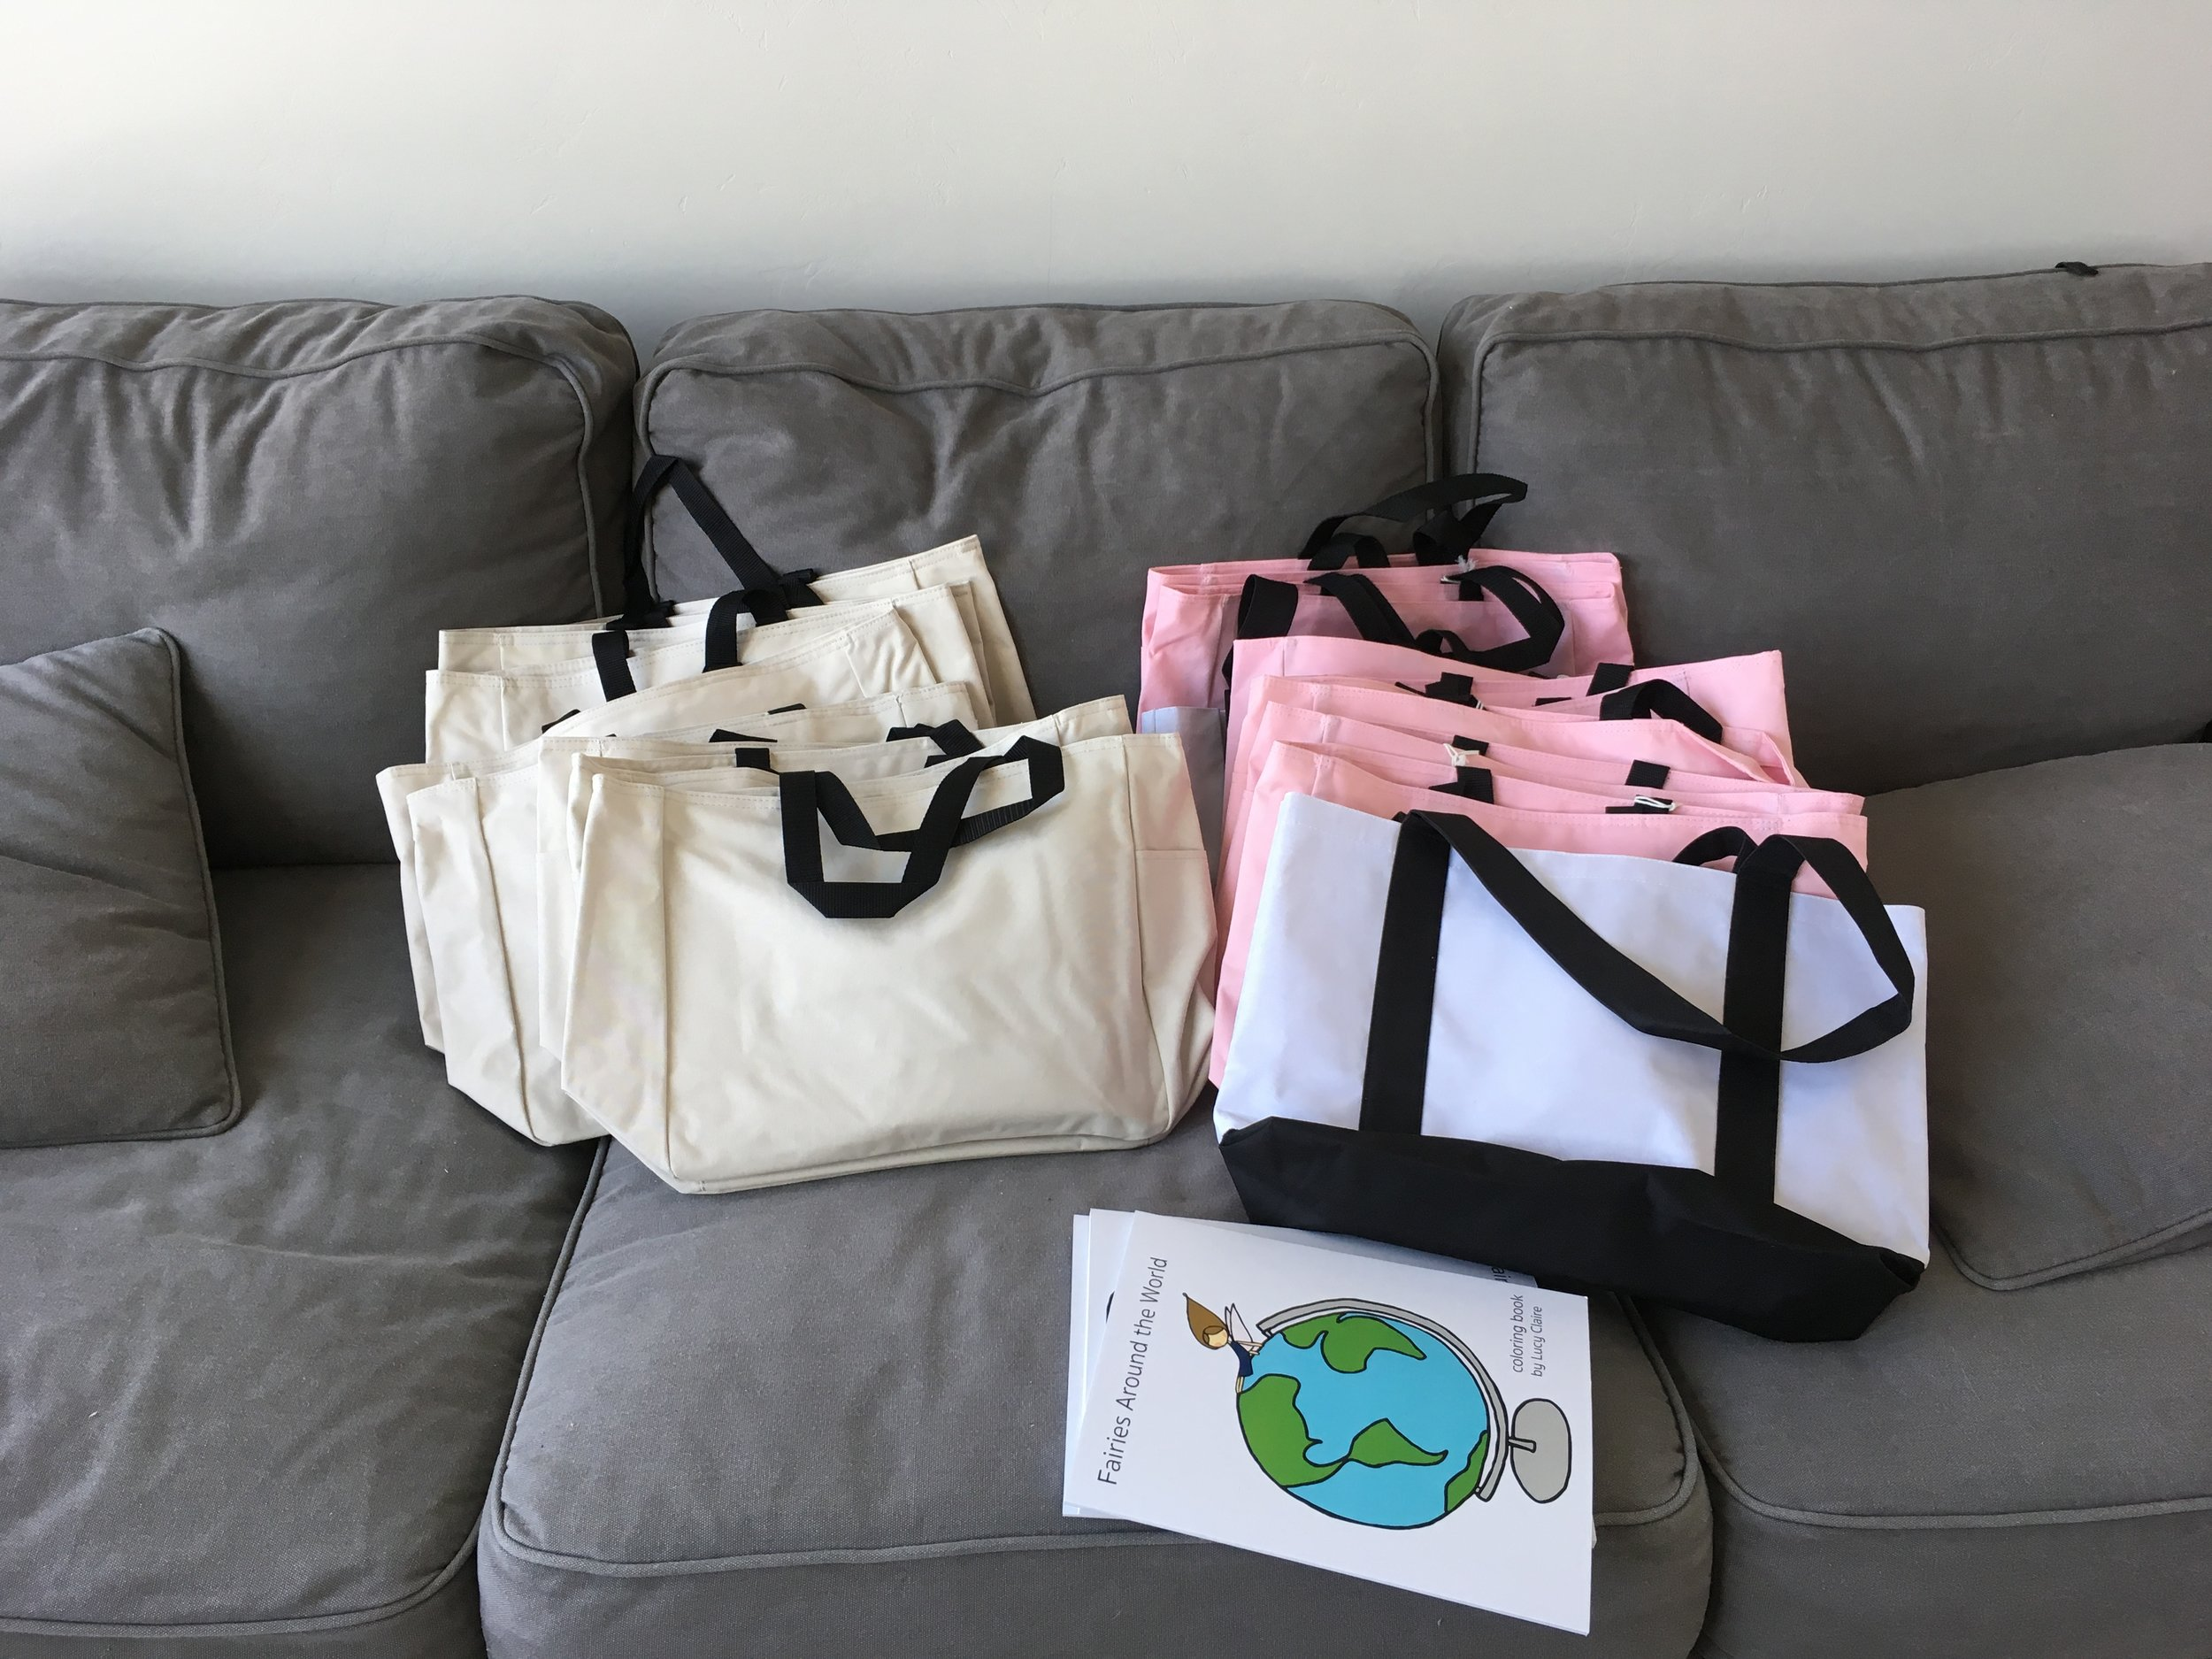 The tote bags and coloring books.